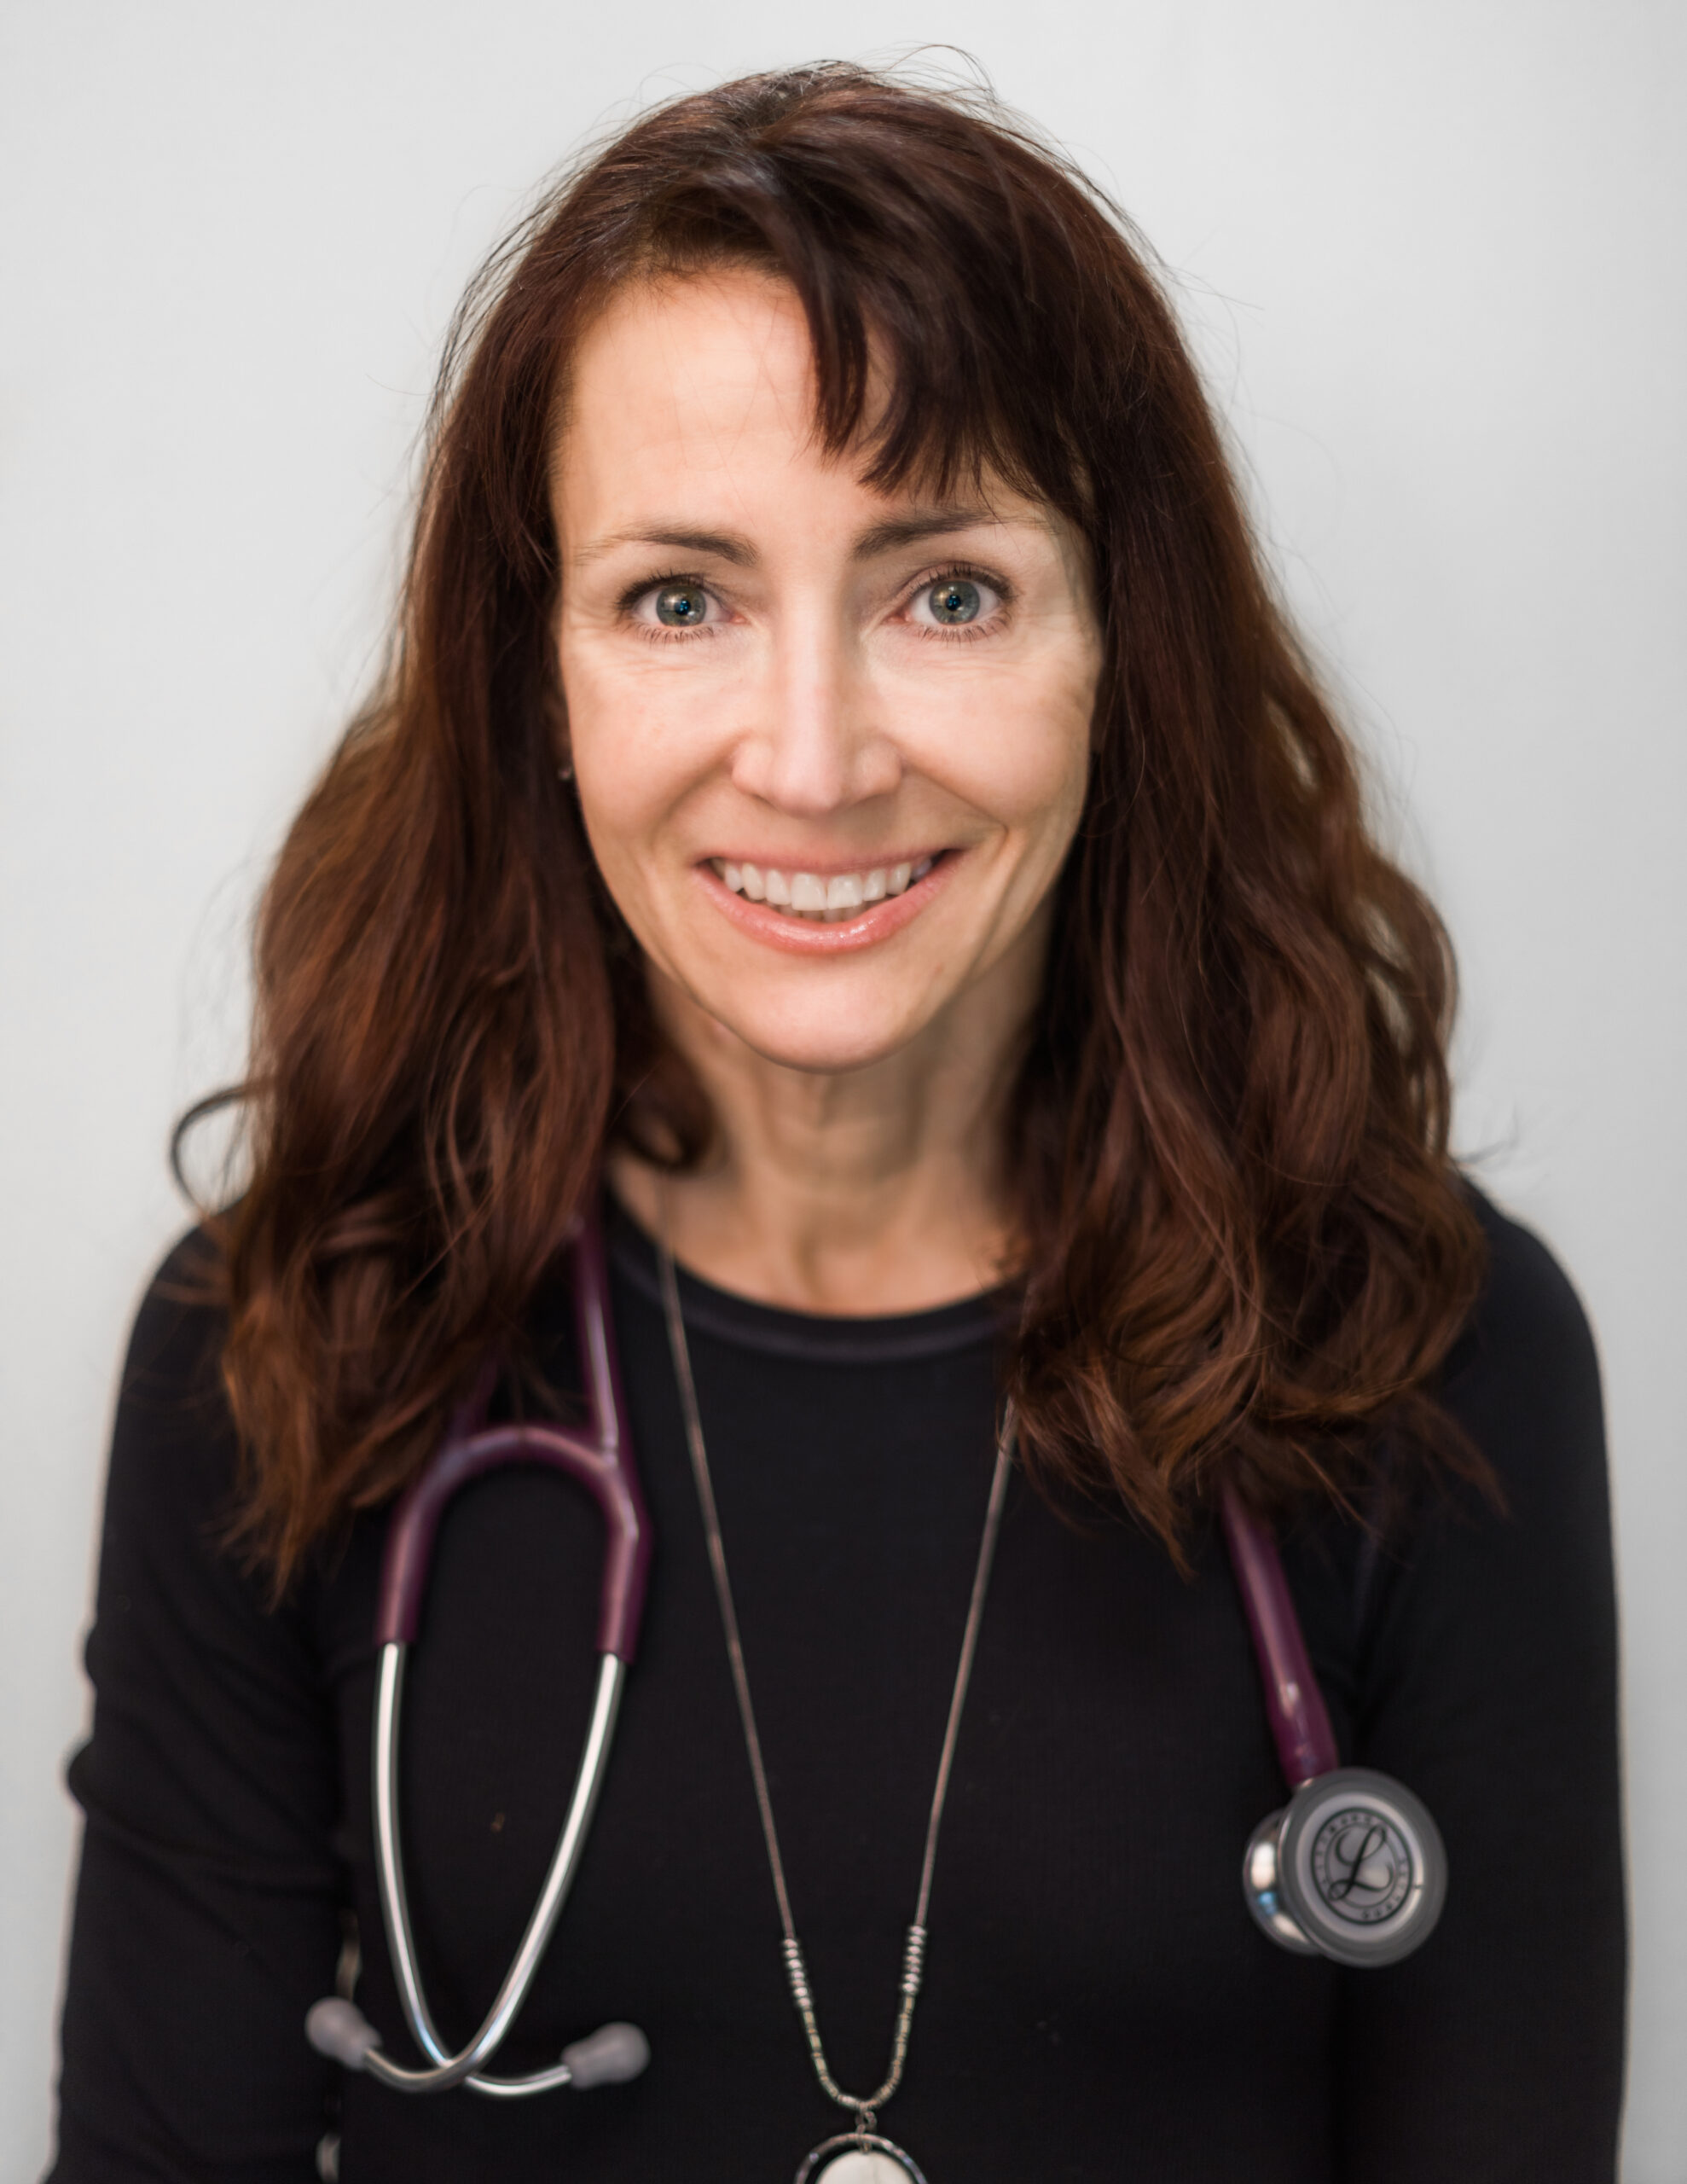 Ashley-Woods-MD-functional-and-integrative-medicine-doctor-at-MaxWell-Clinic-Nashville